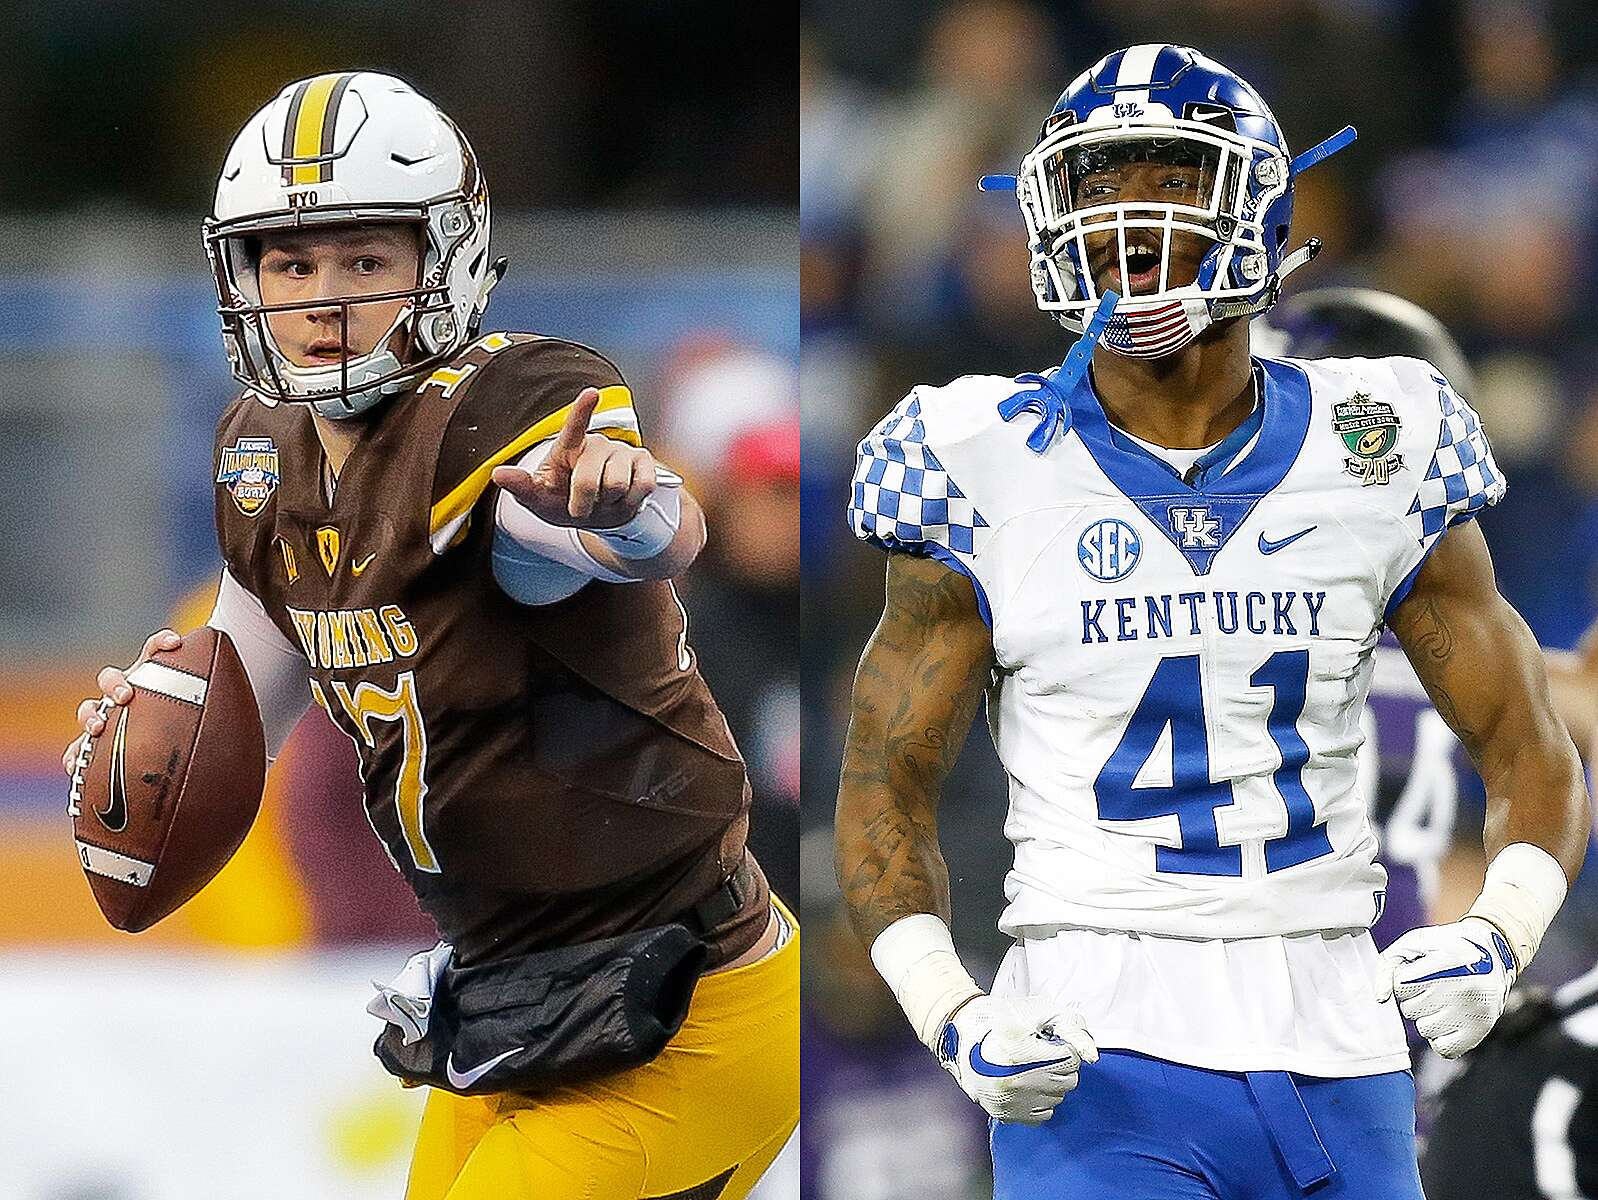 hot sale online 986e8 92bef Josh Allen: Kentucky LB on NFL draft buzz, Bills QB of same ...